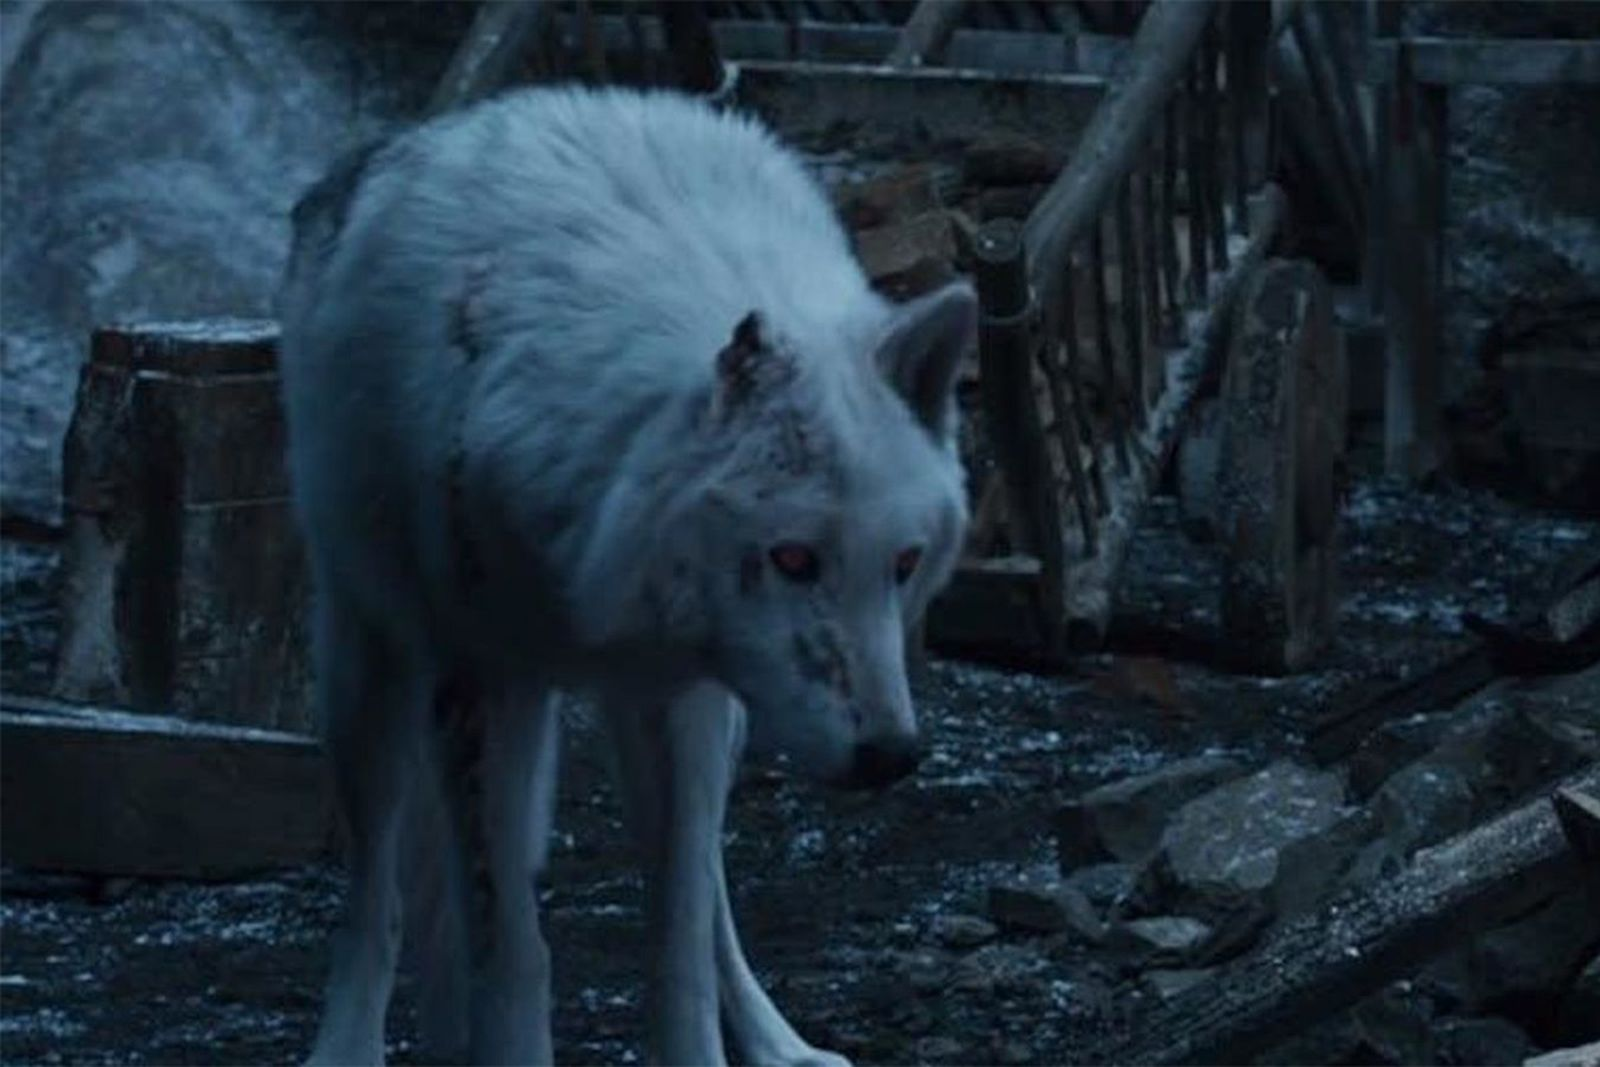 jon snow abandoned ghost game of thrones